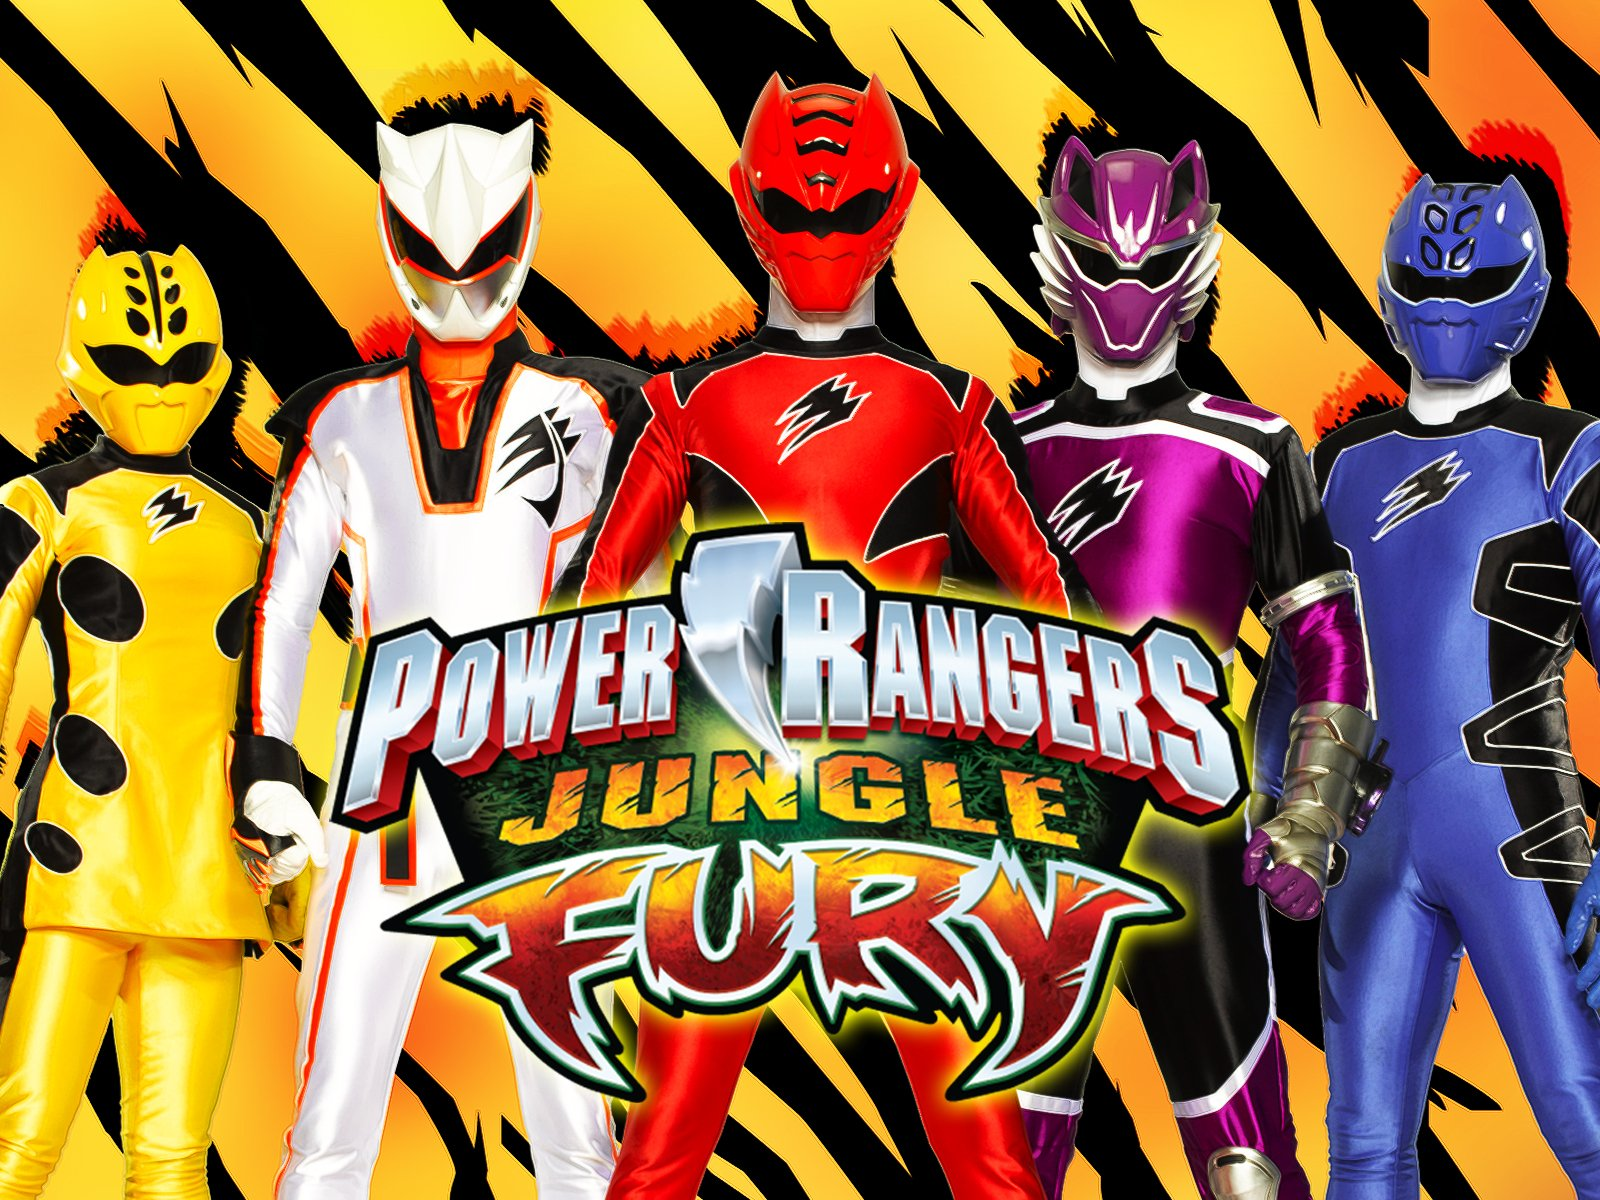 Power Rangers Jungle Fury Wallpapers Posted By Christopher Sellers